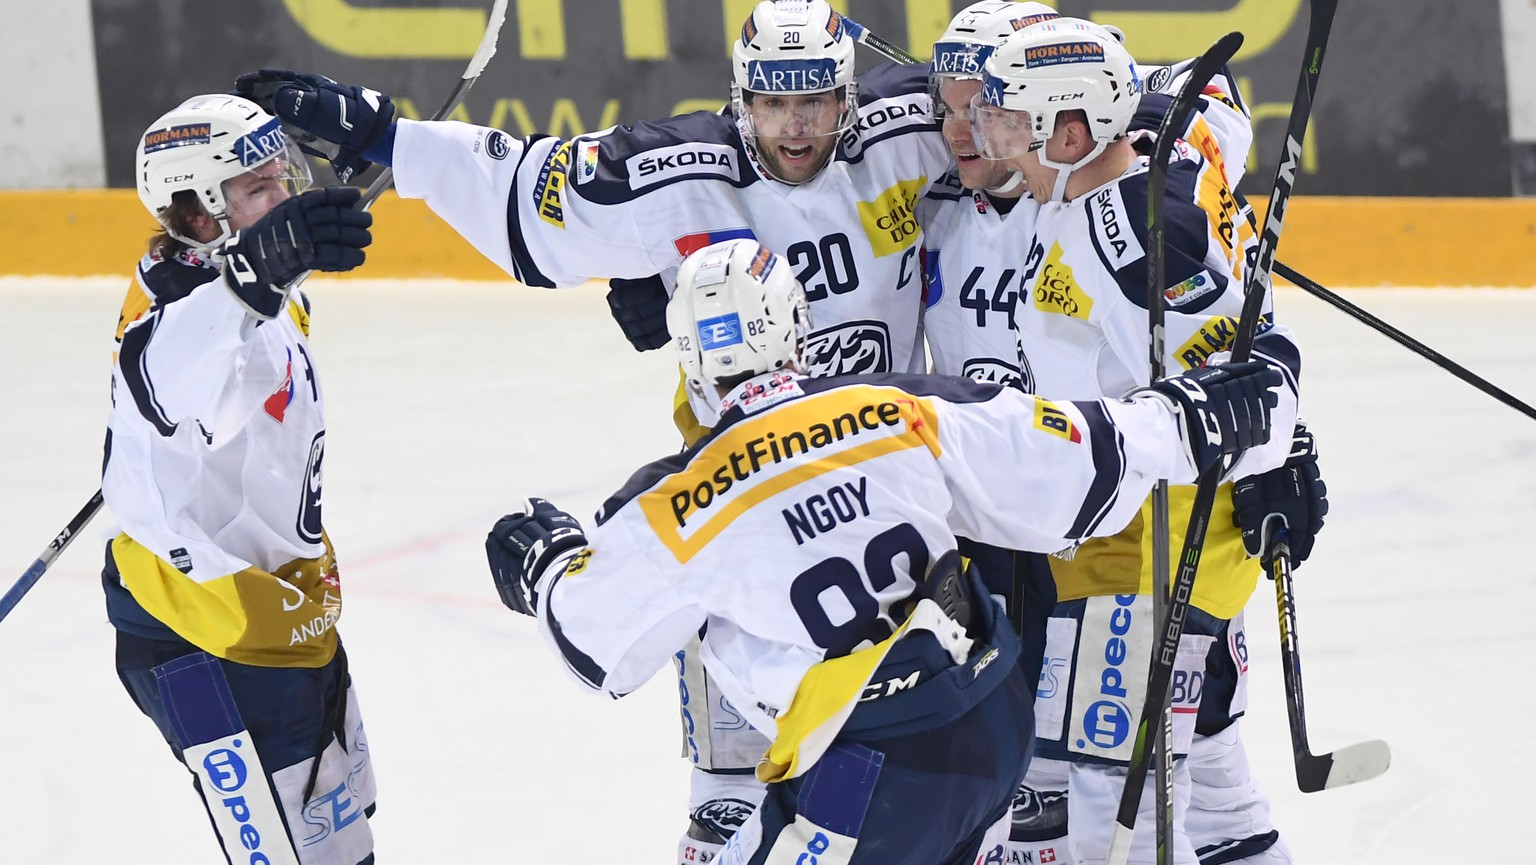 Ambri's player Elias Bianchi, center, celebrates the 0 - 3 goal, during the preliminary round game of National League Swiss Championship 2018/19 between HC Lugano and HC Ambri Piotta, at the Corner Arena in Lugano, Switzerland, Friday, January 4, 2019. (KEYSTONE/Ti-Press/Samuel Golay)